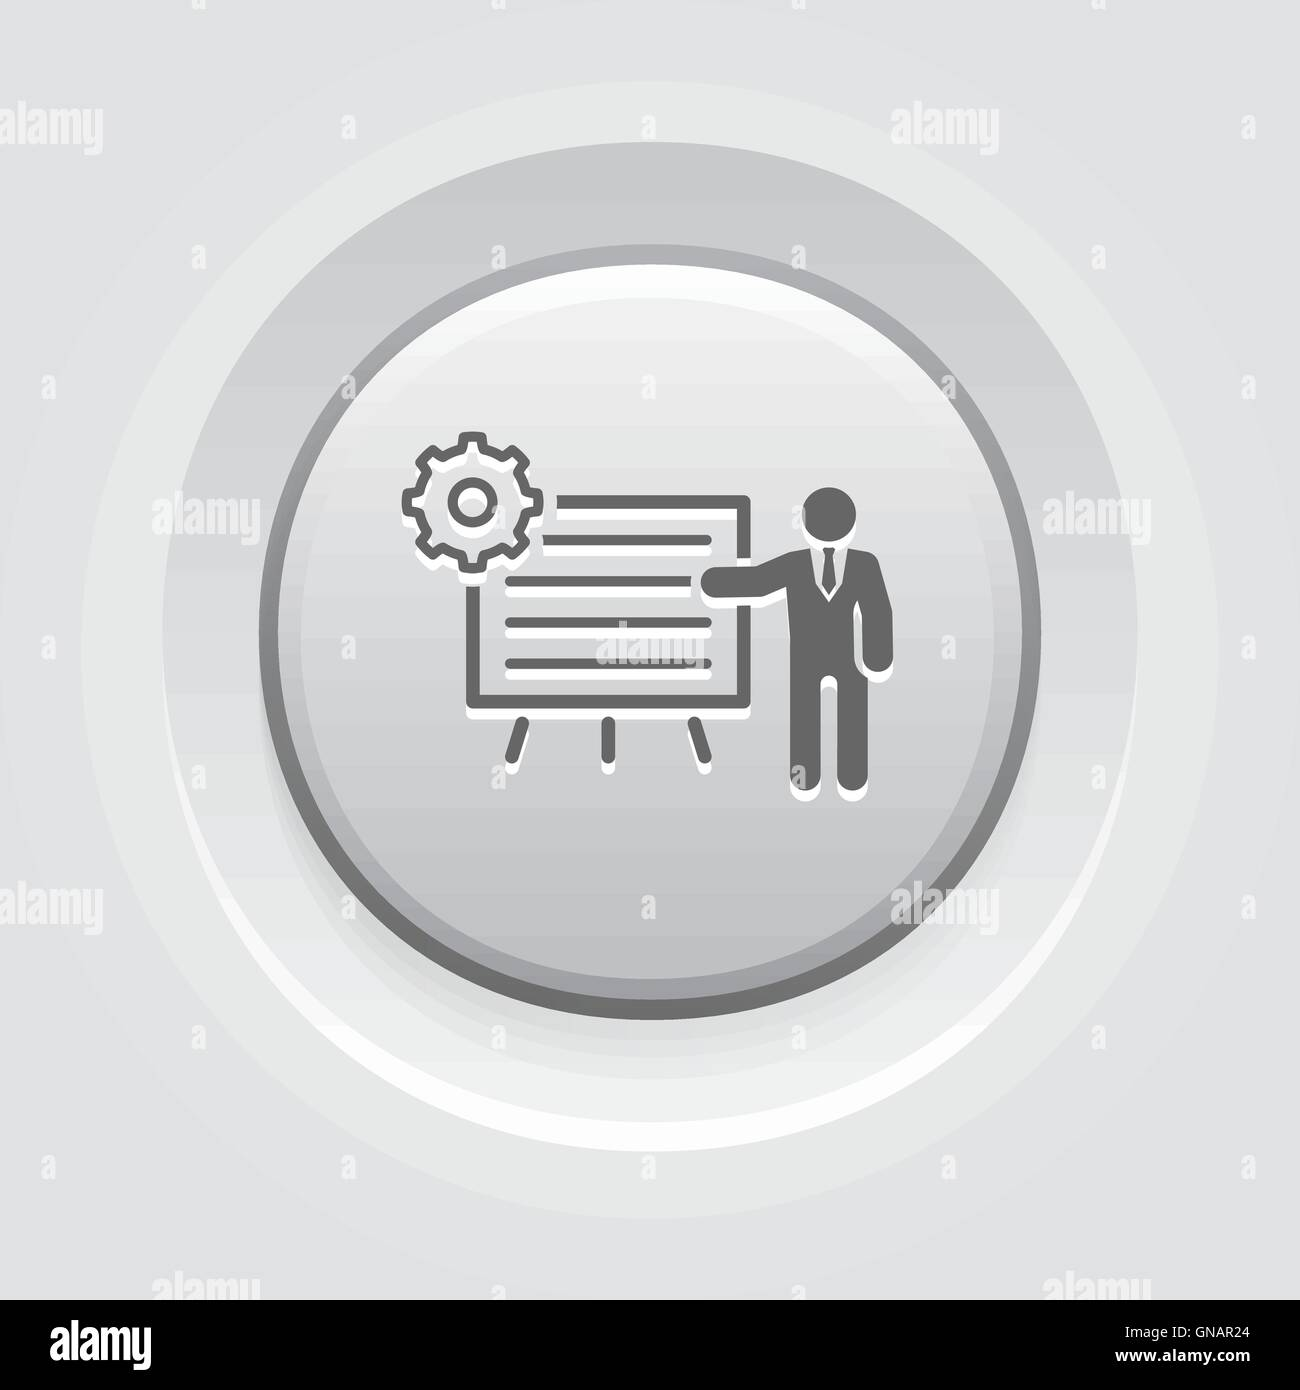 Business Processes Icon - Stock Image